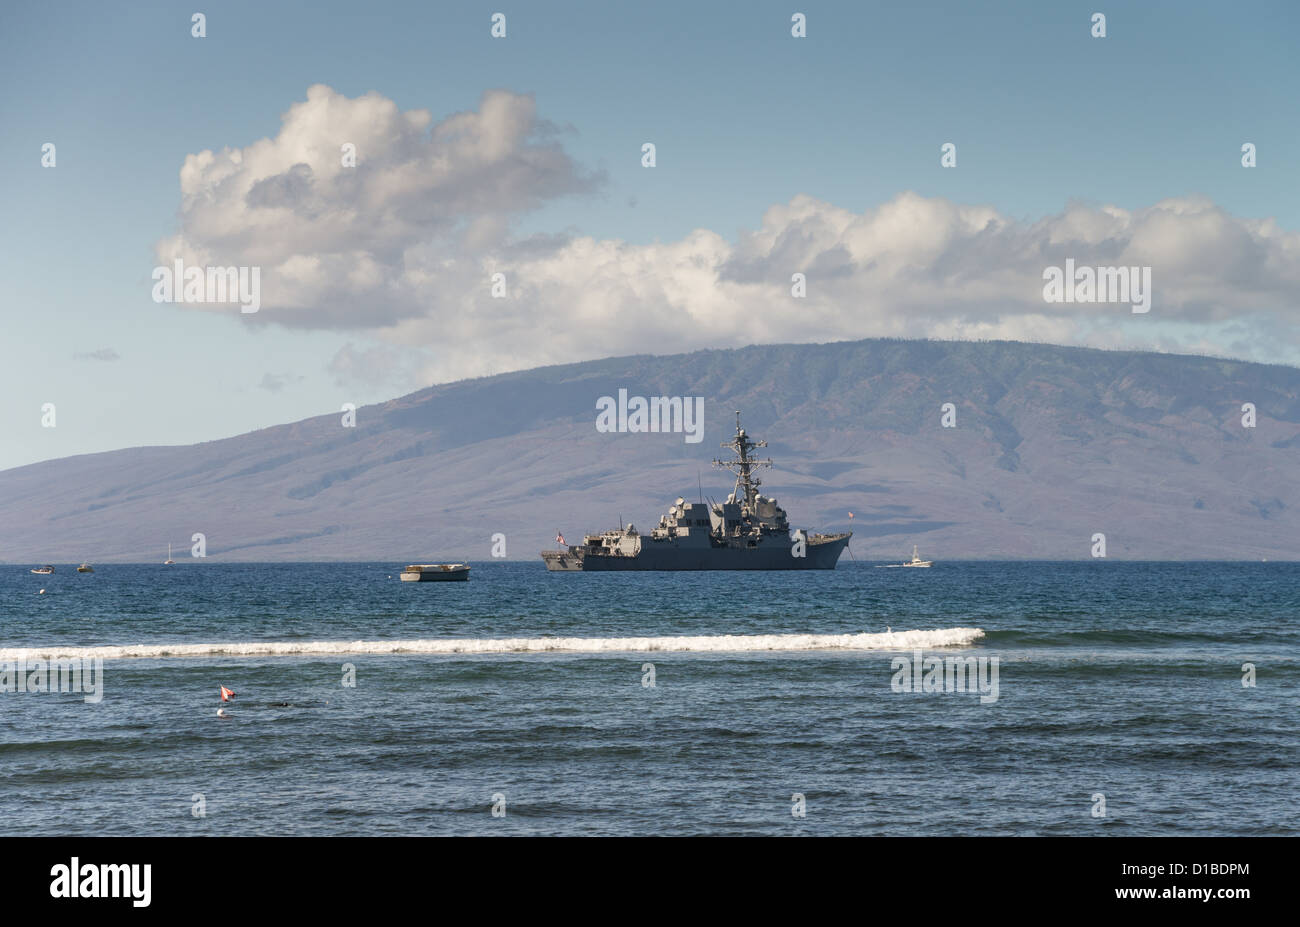 United States Navy Ship anchored off the coast of Maui, Hawaii. The island of Lanai in background Stock Photo